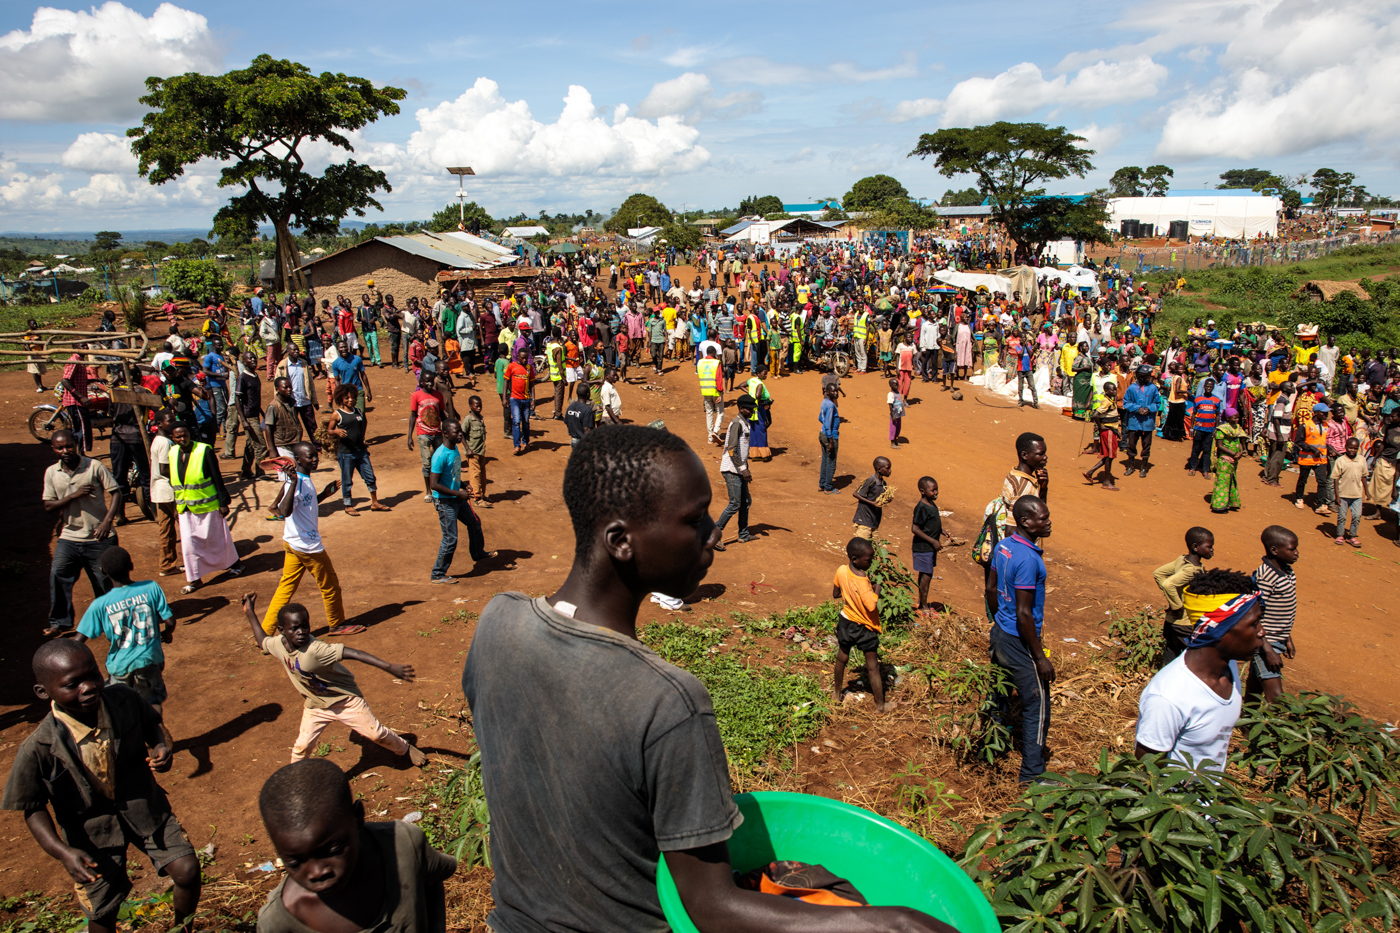 KYANGWALI, UGANDA: Refugees from the Democratic Republic of Congo gather by a market in the Kyangwali Refugee Settlement on April 5, 2018.